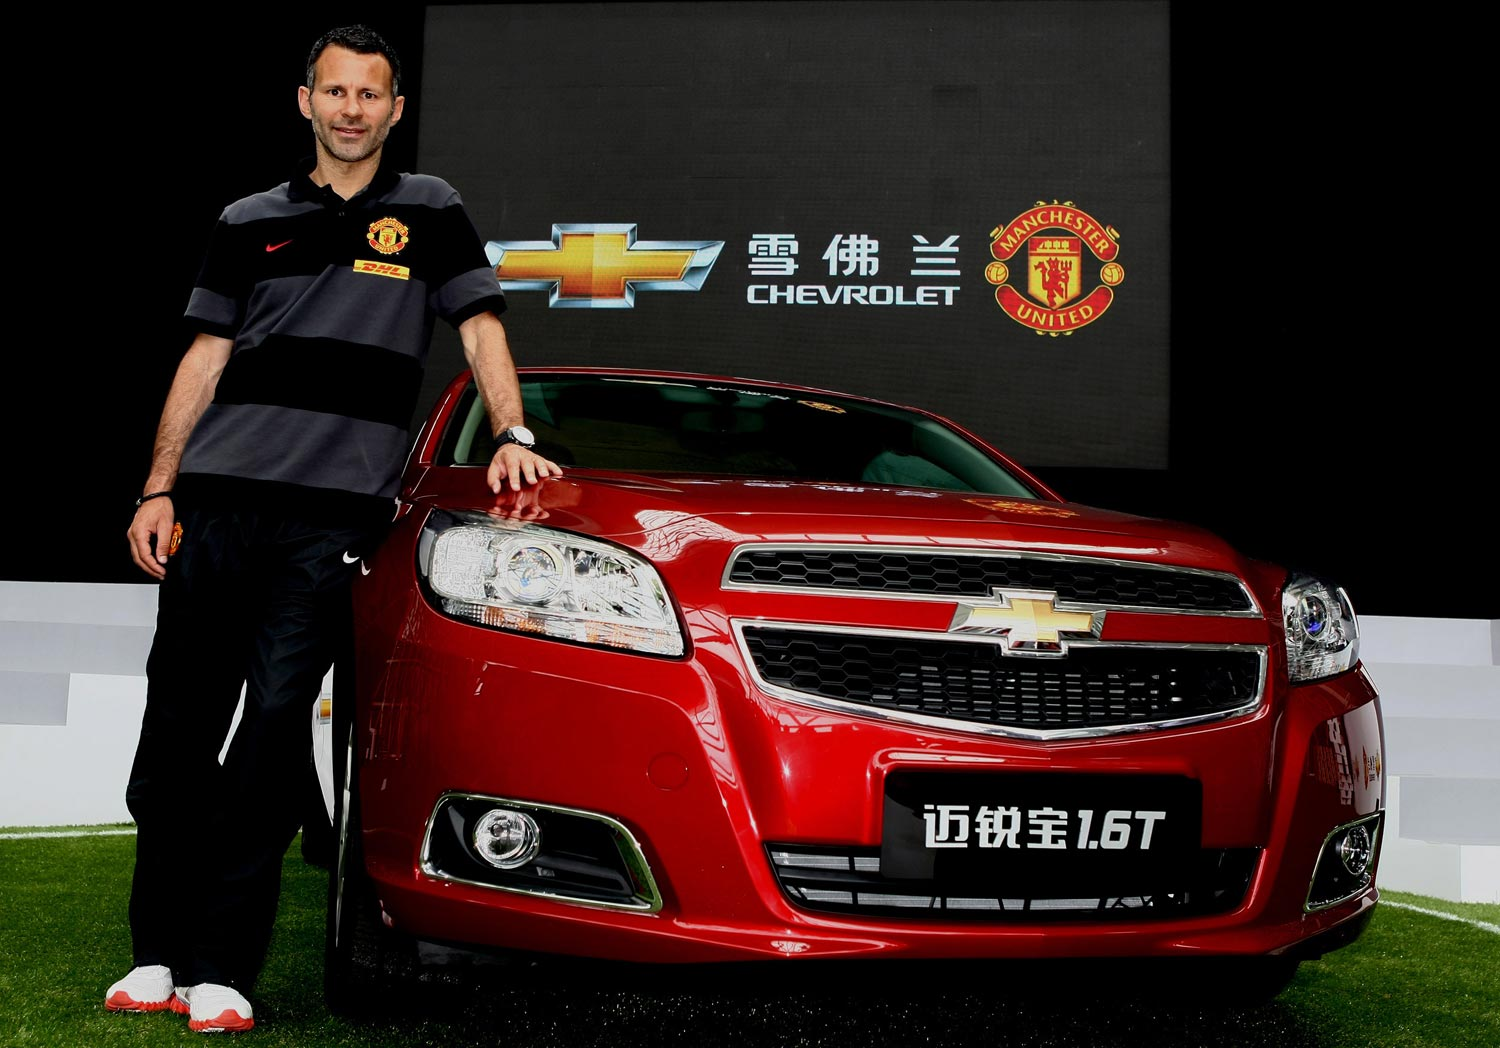 Chevrolet And Manchester United Announce Partnership In Shanghai 21